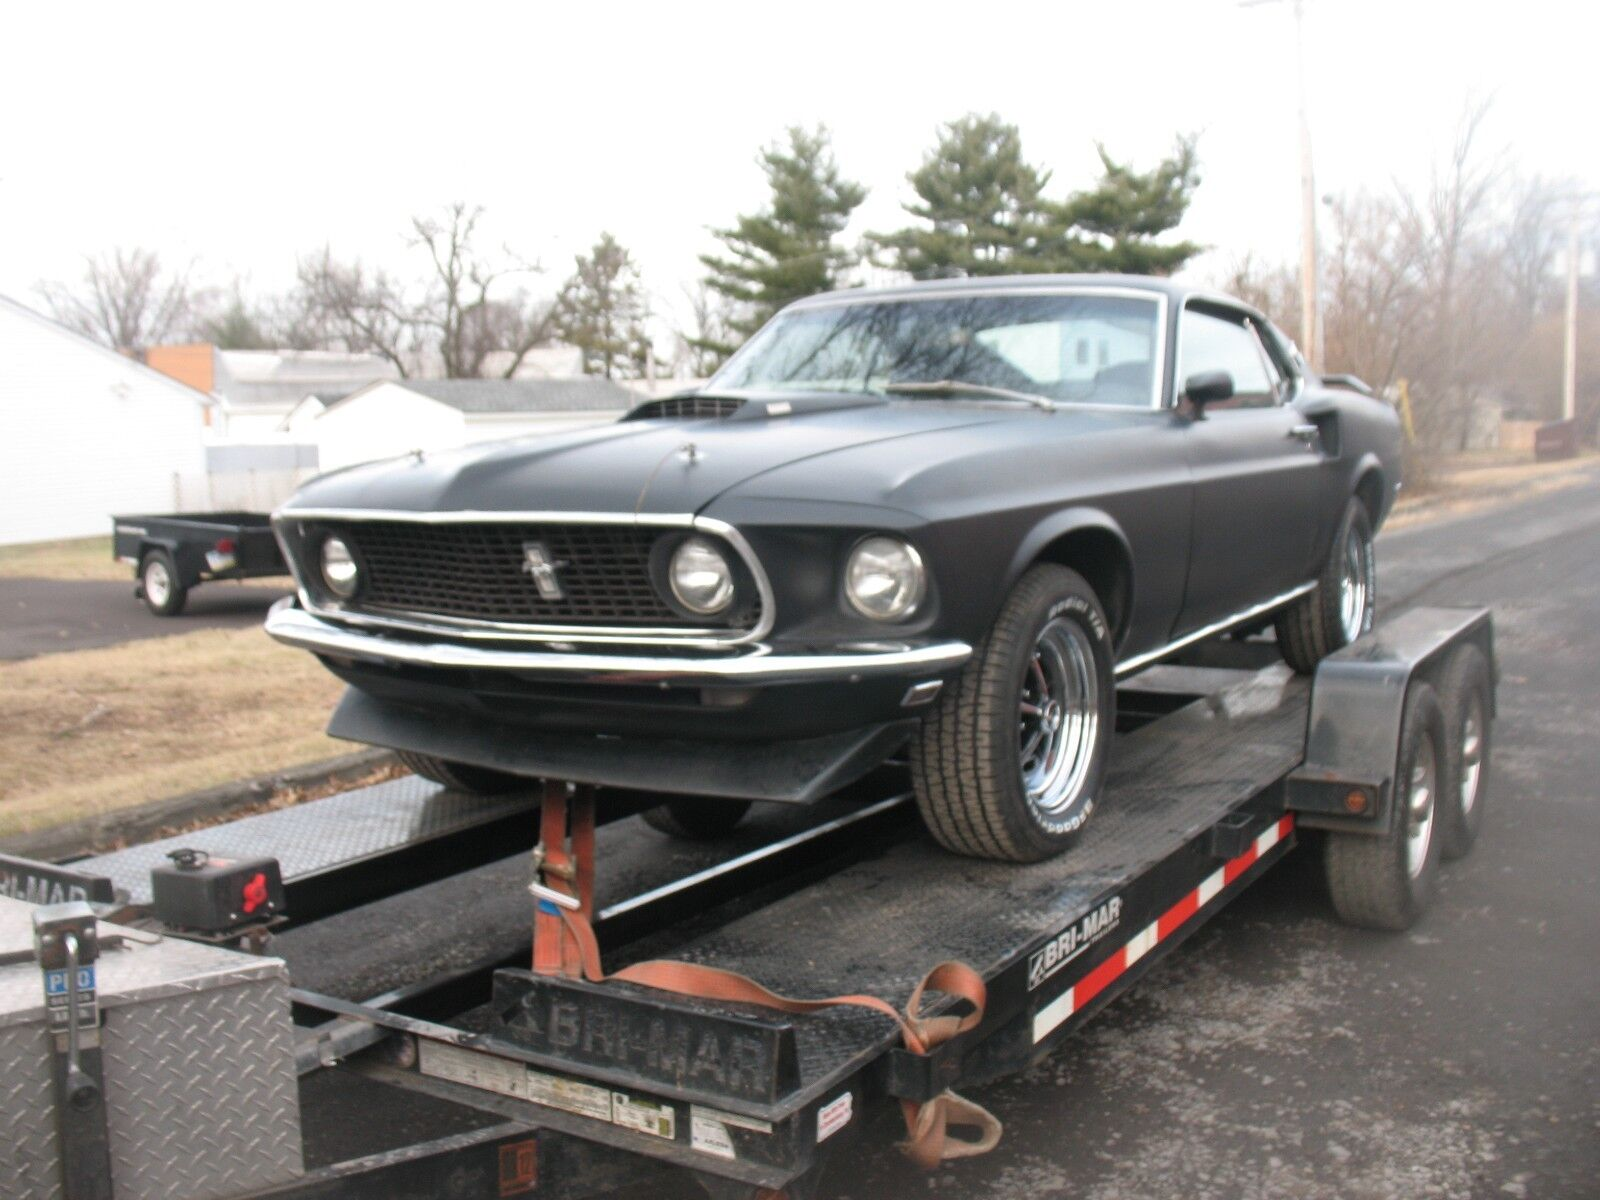 1969 Ford Mustang Mach 1 S-Code 390 / 4 Speed